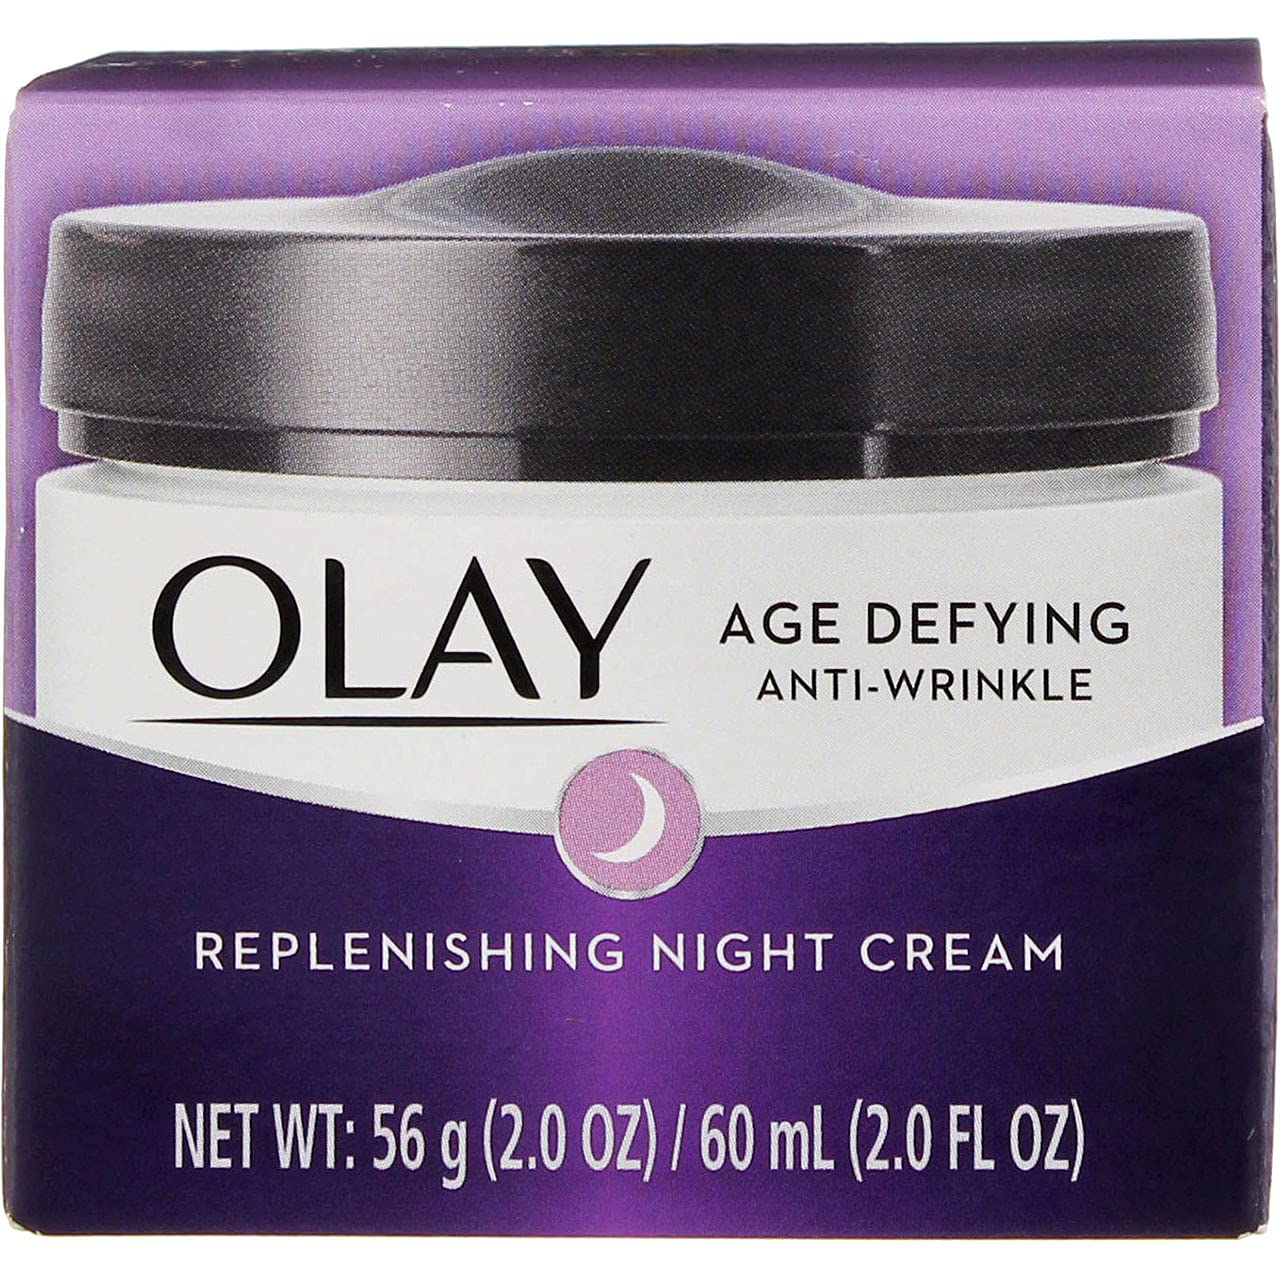 Omaha Mall OLAY Age Defying excellence Anti-Wrinkle Replenishing Night Cream 2 oz Pac